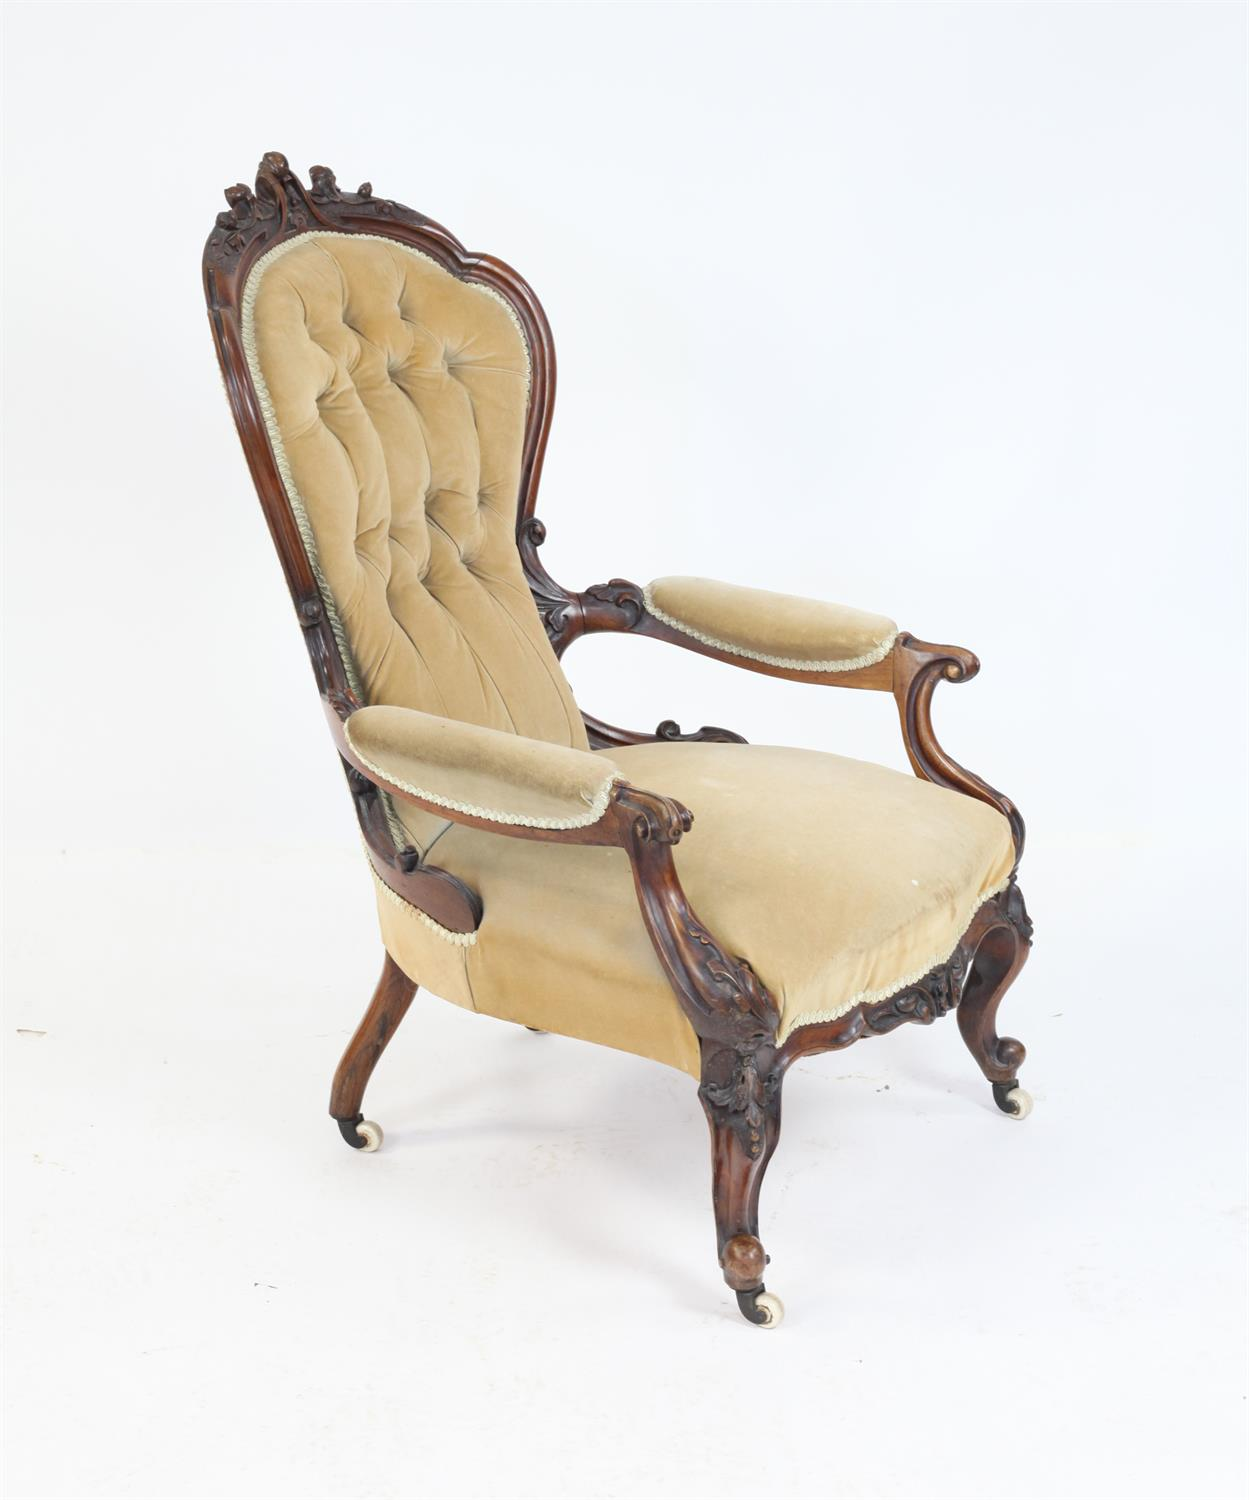 Victorian rosewood framed open armchair with carved back on carved cabriole legs - Image 2 of 3